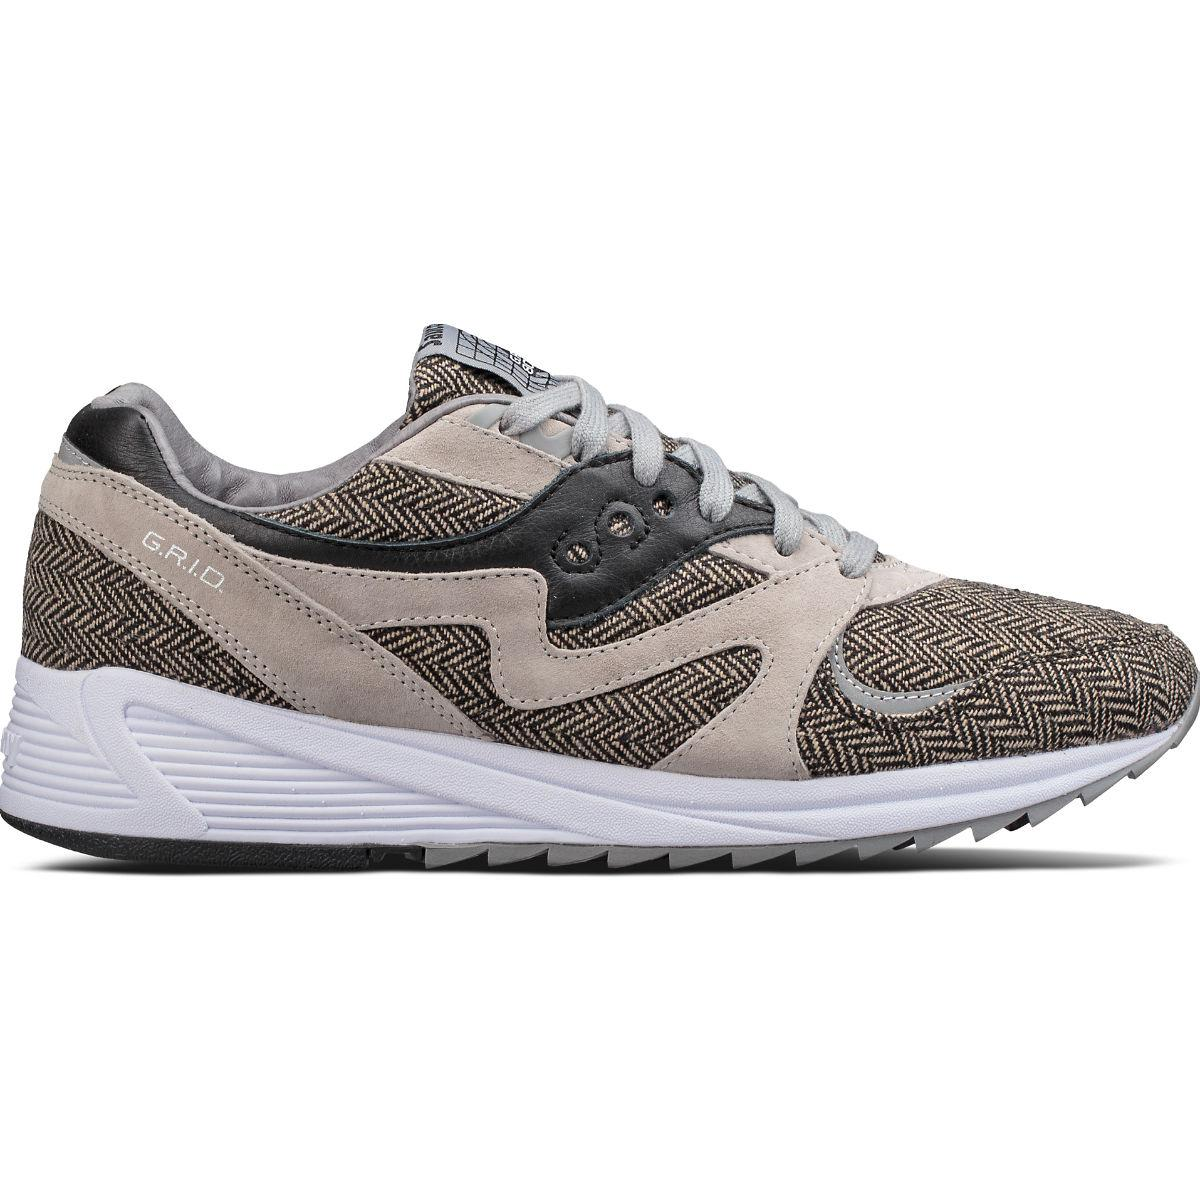 9d7a1d72d61a Lyst - Saucony Grid 8000 Cl Ht Tailored in Gray for Men